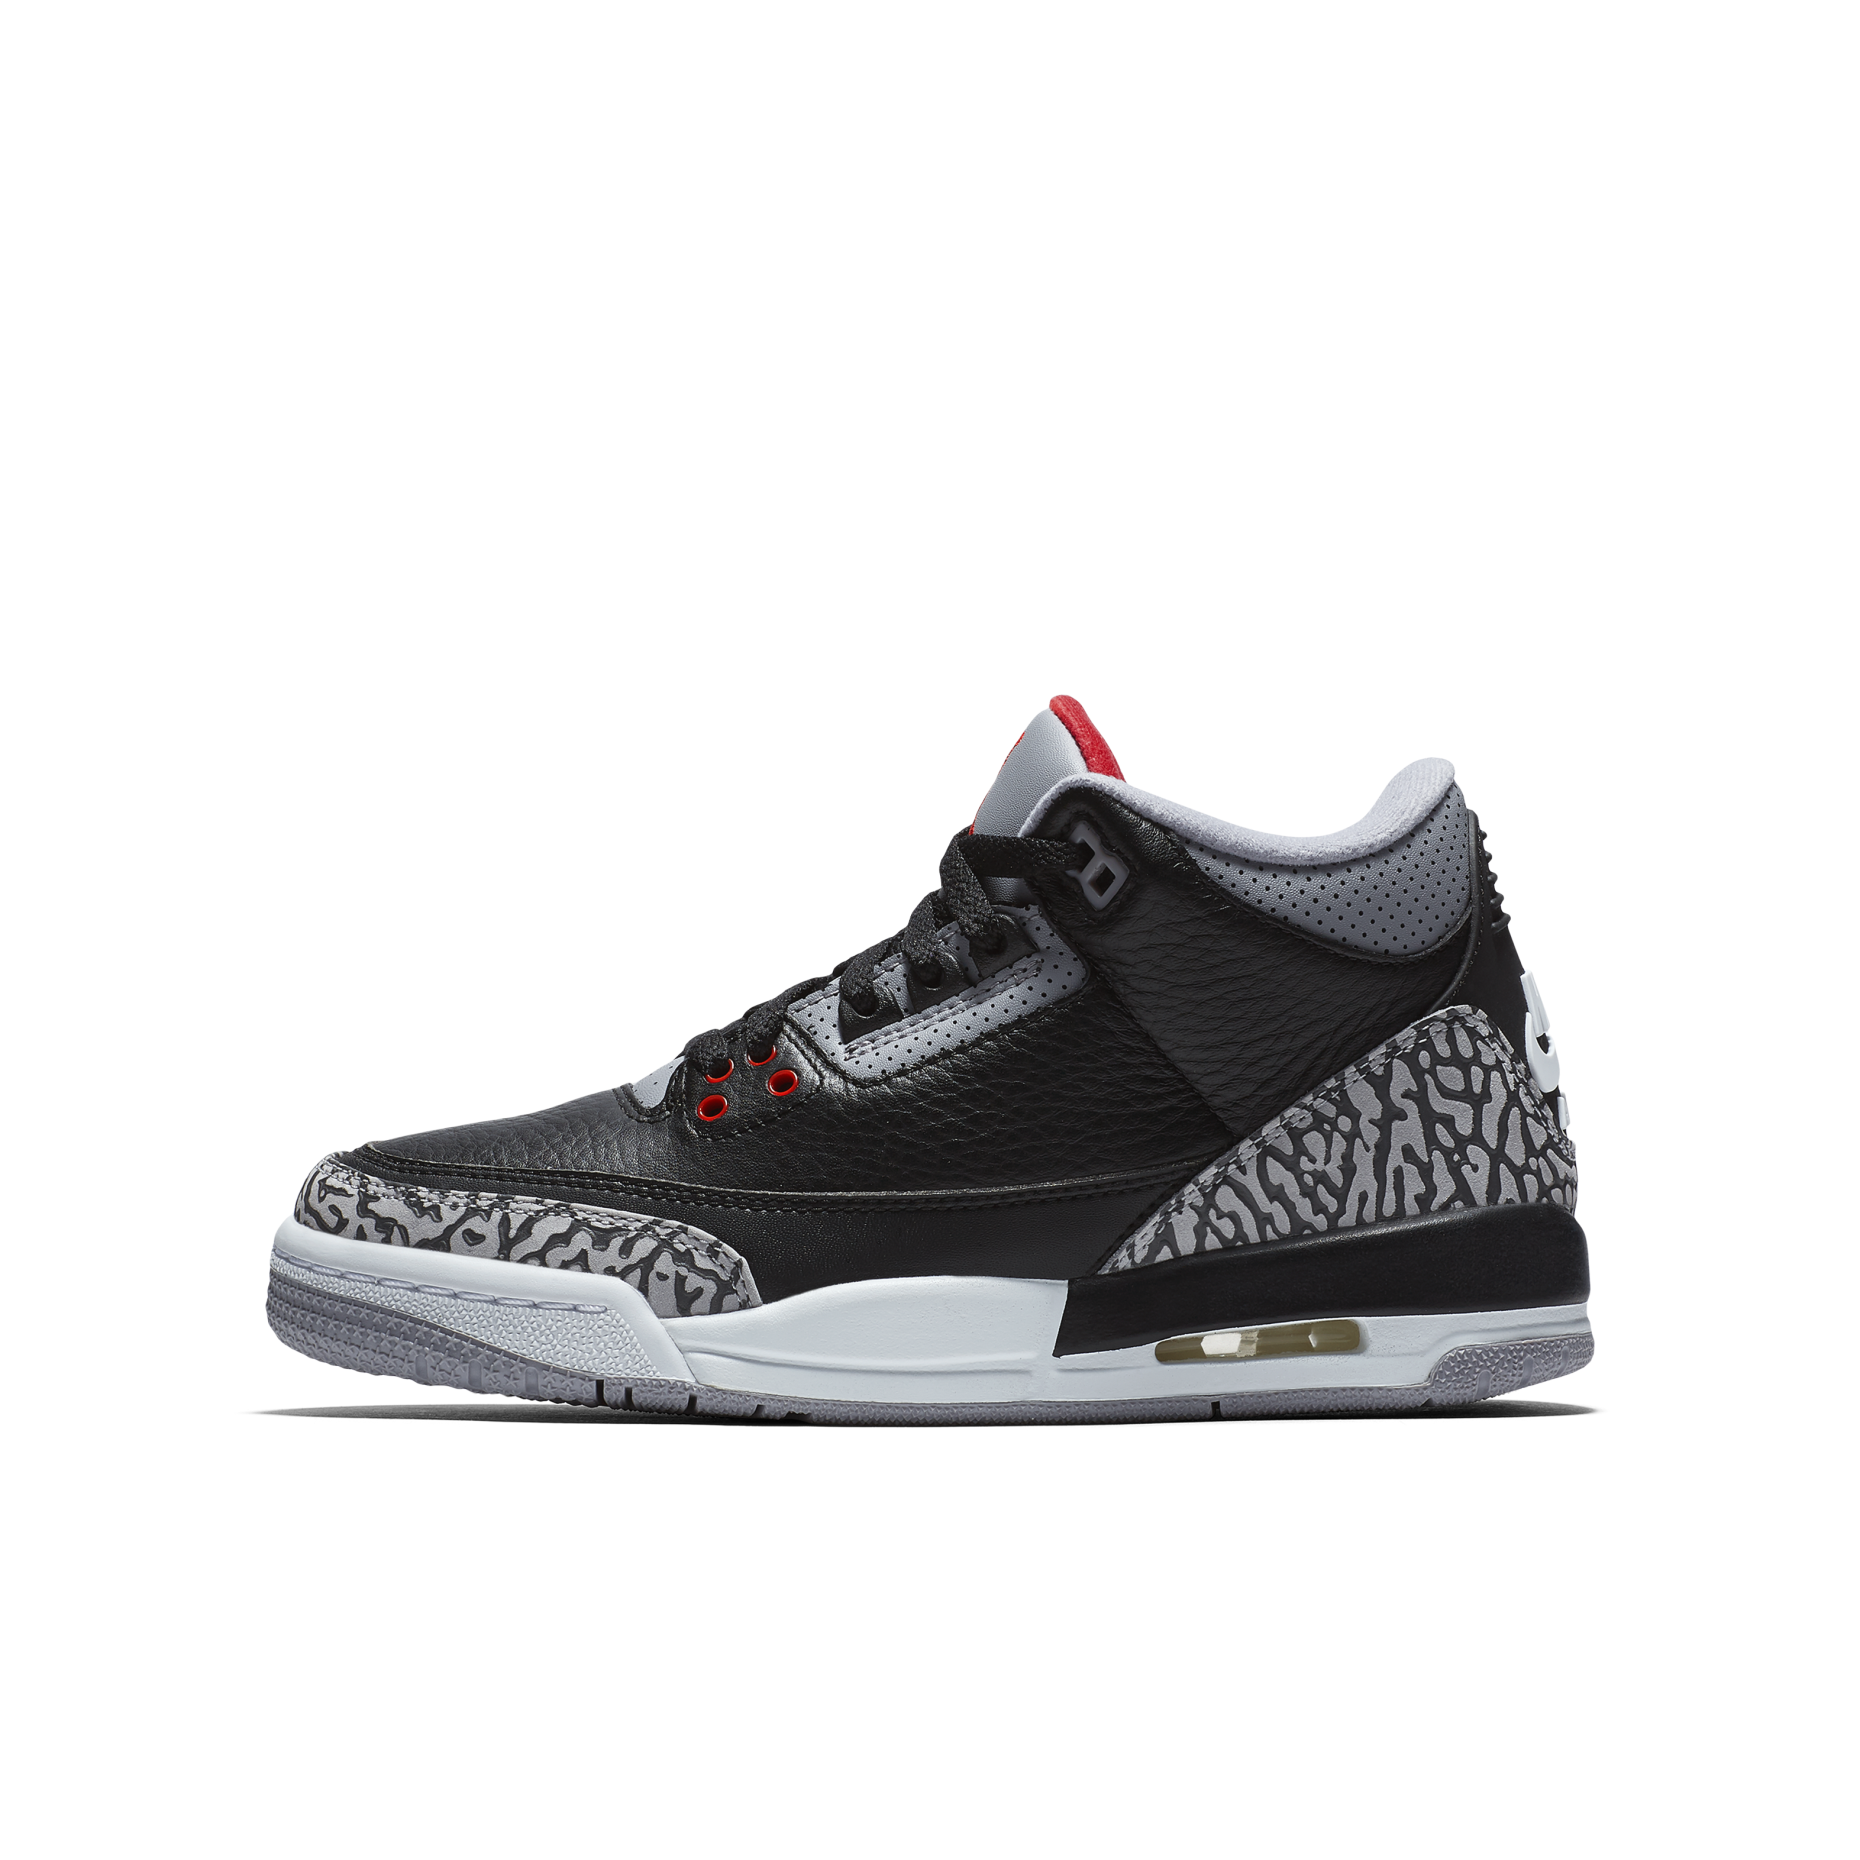 69257641493 Nike_Air_Jordan_3_Retro_OG_BG_Black_Cement_854261-001_1.png?v=1535026045